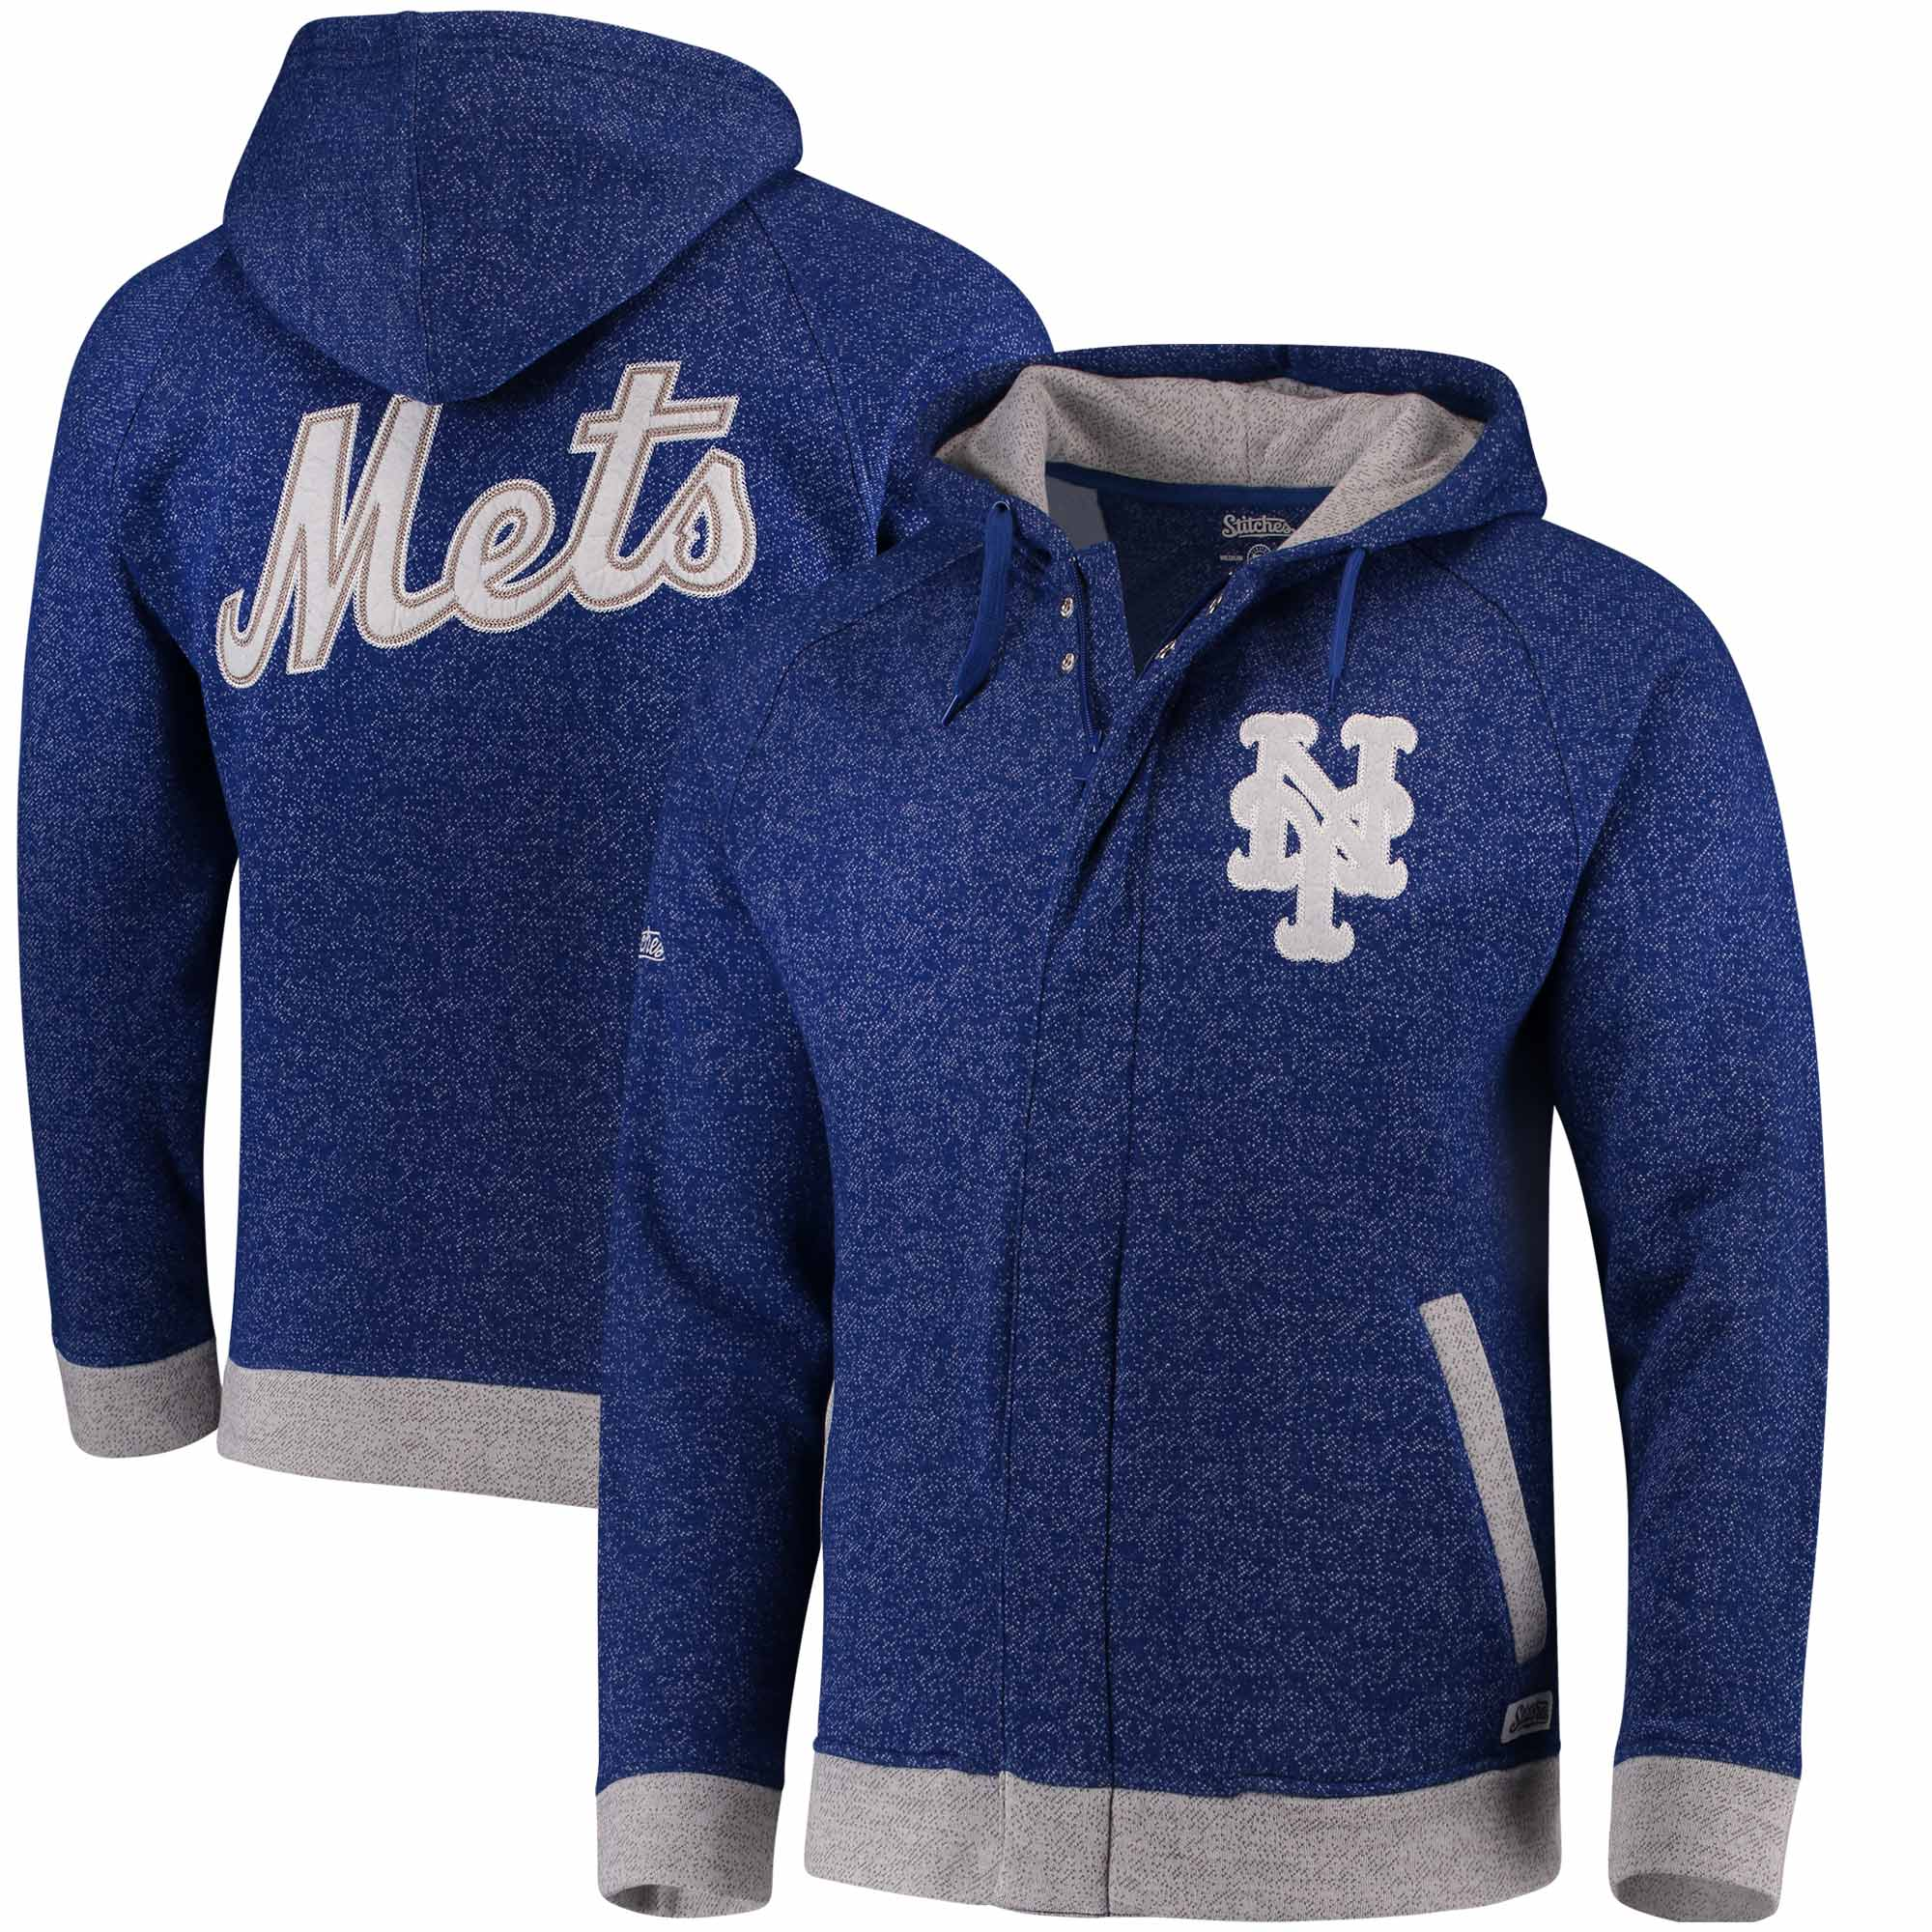 New York Mets Stitches Twisted Yarn Full-Zip Hoodie - Royal/Natural